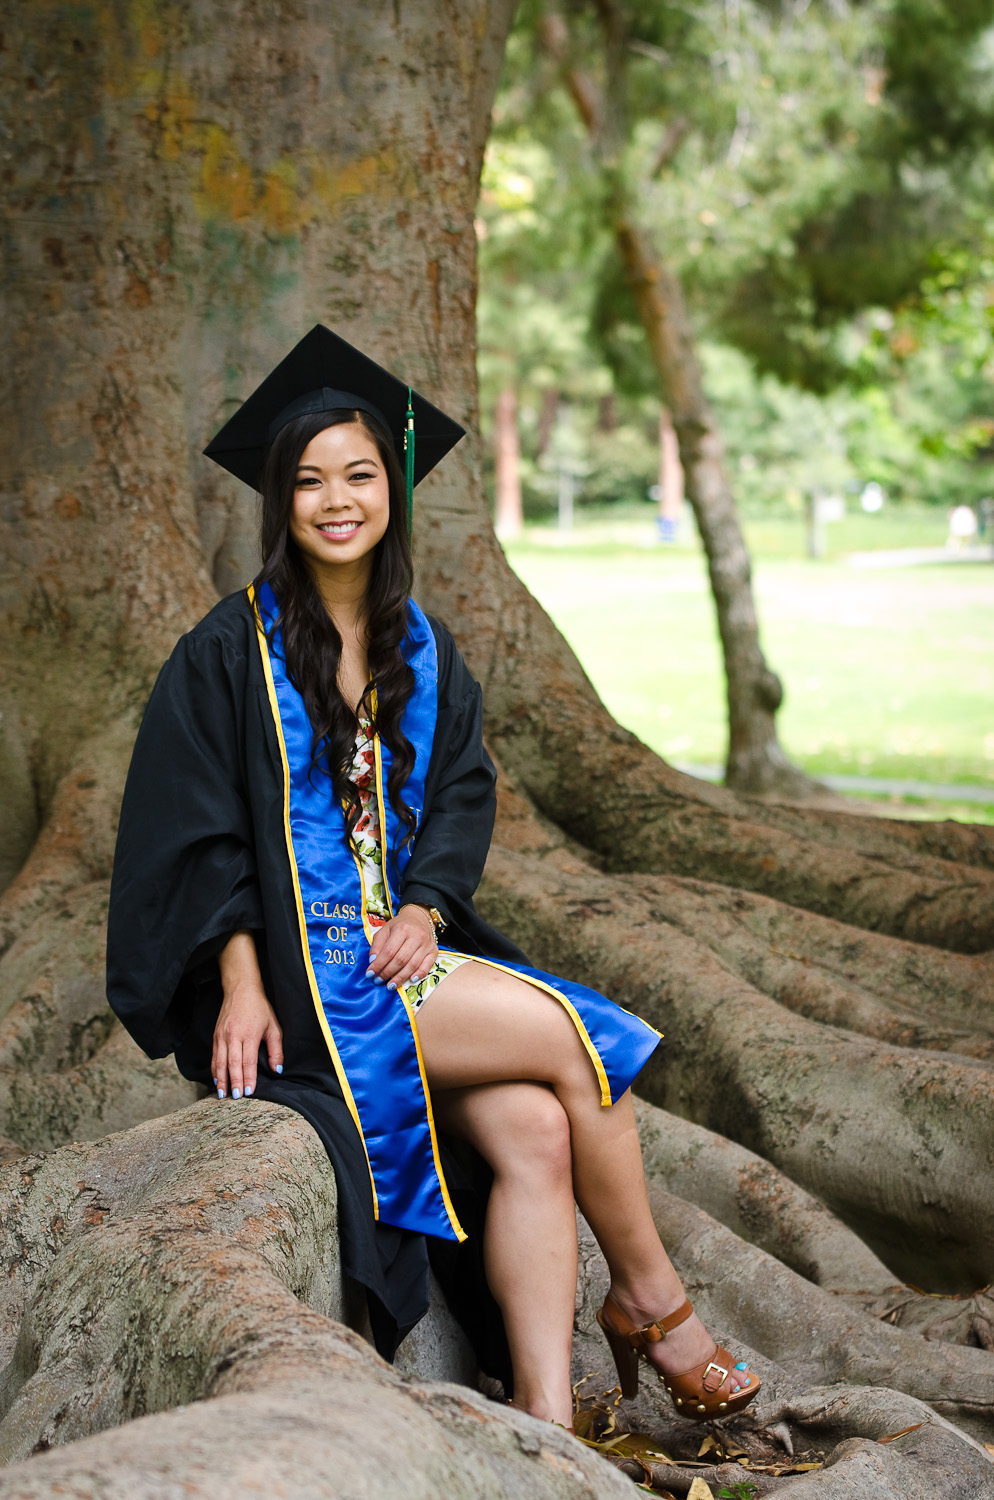 Bryan-Miraflor-Photography-Christine-Grad-Photos-20130609-0055.jpg